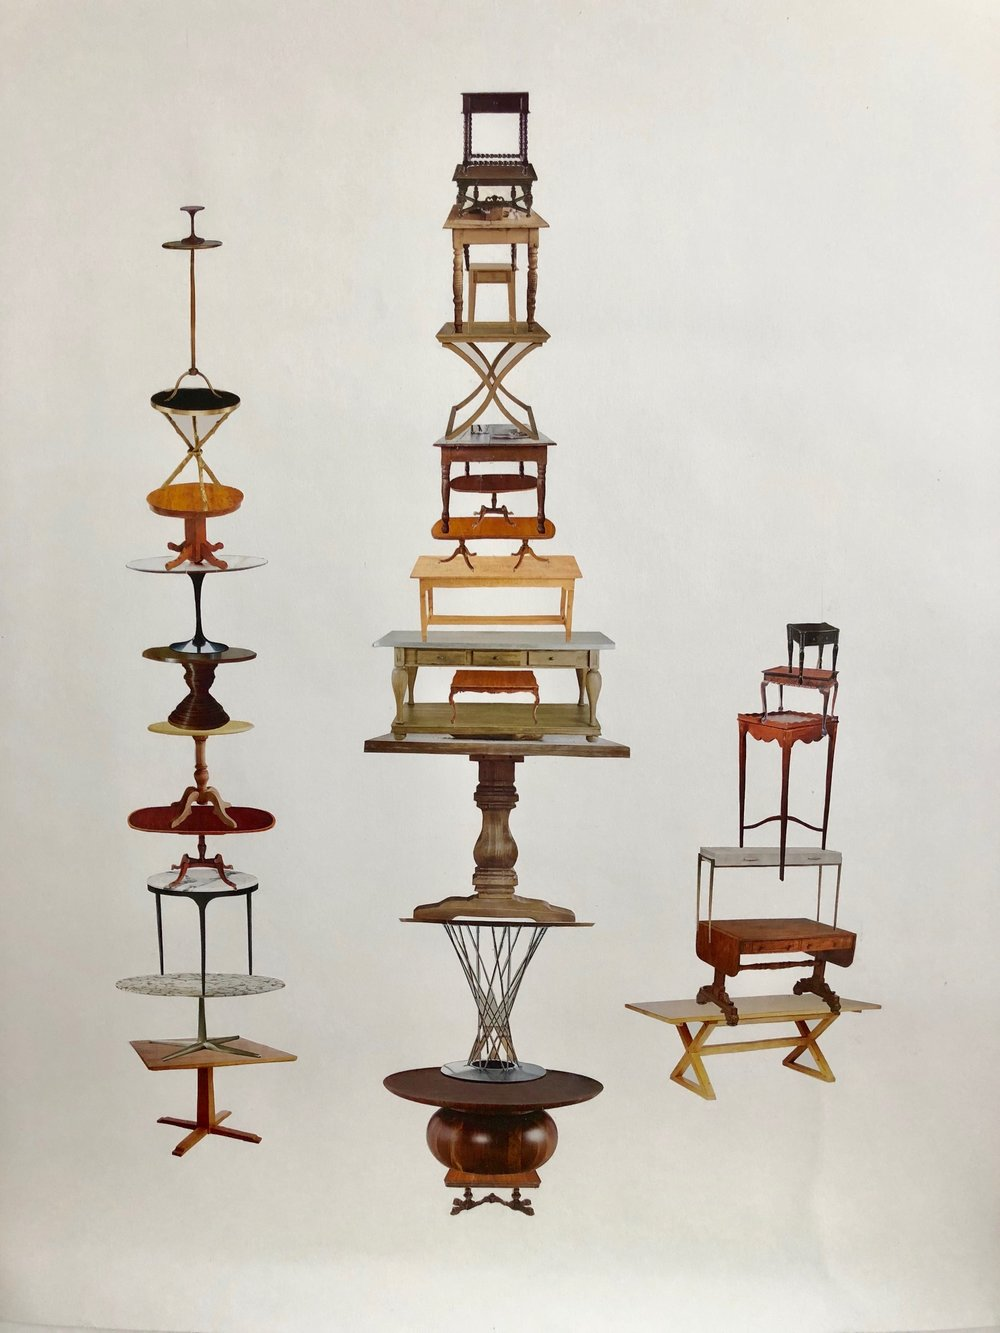 "Tonia Di Risio  Table Towers,  2018 Handcut collage 24""x36""  Gleaned from the pages of food and design magazines, photo fragments are arranged into a new landscape reflecting on consumption, home décor, and real estate."